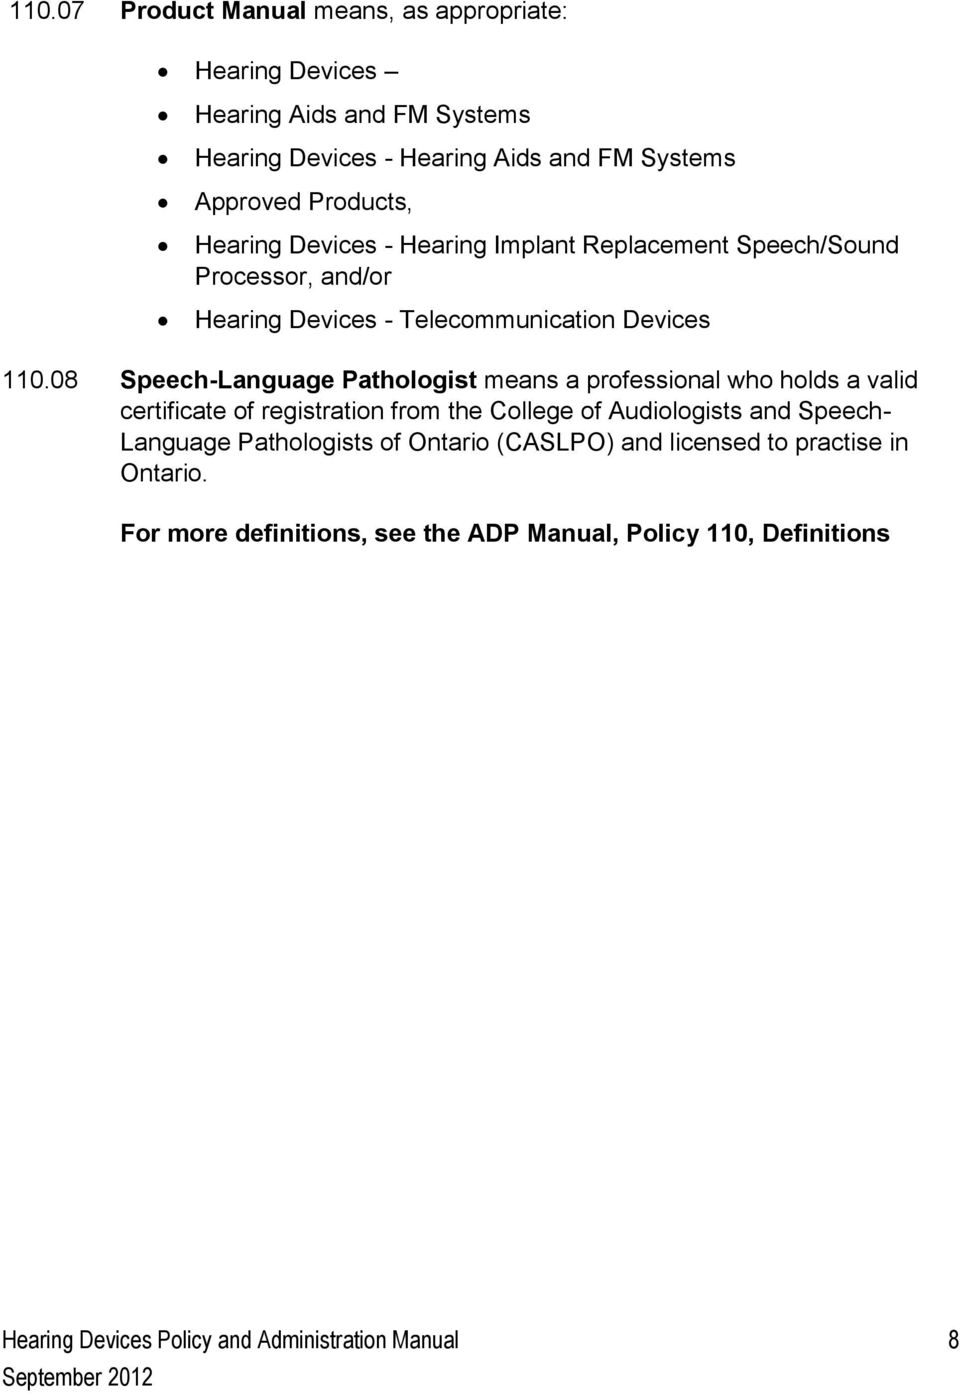 08 Speech-Language Pathologist means a professional who holds a valid certificate of registration from the College of Audiologists and Speech- Language